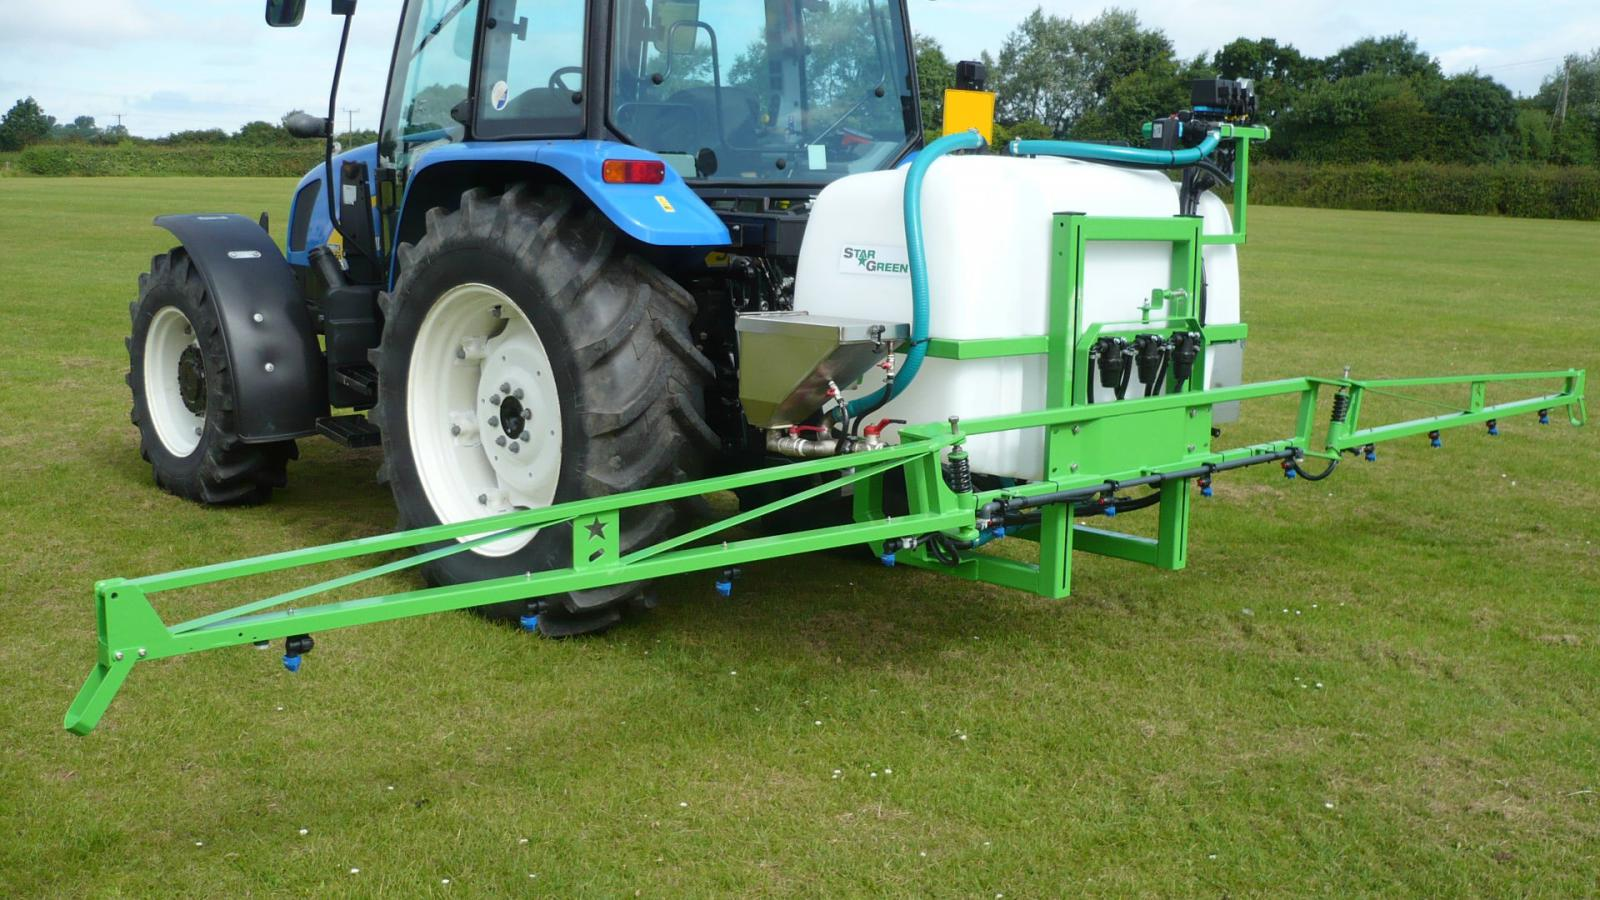 The AS600Pro and AS800Pro tractor-mounted amenity sprayers are rightly regarded by professional greenkeepers and groundsmen as being top quality amenity sprayers, ideal for high quality sports and amenity turf.